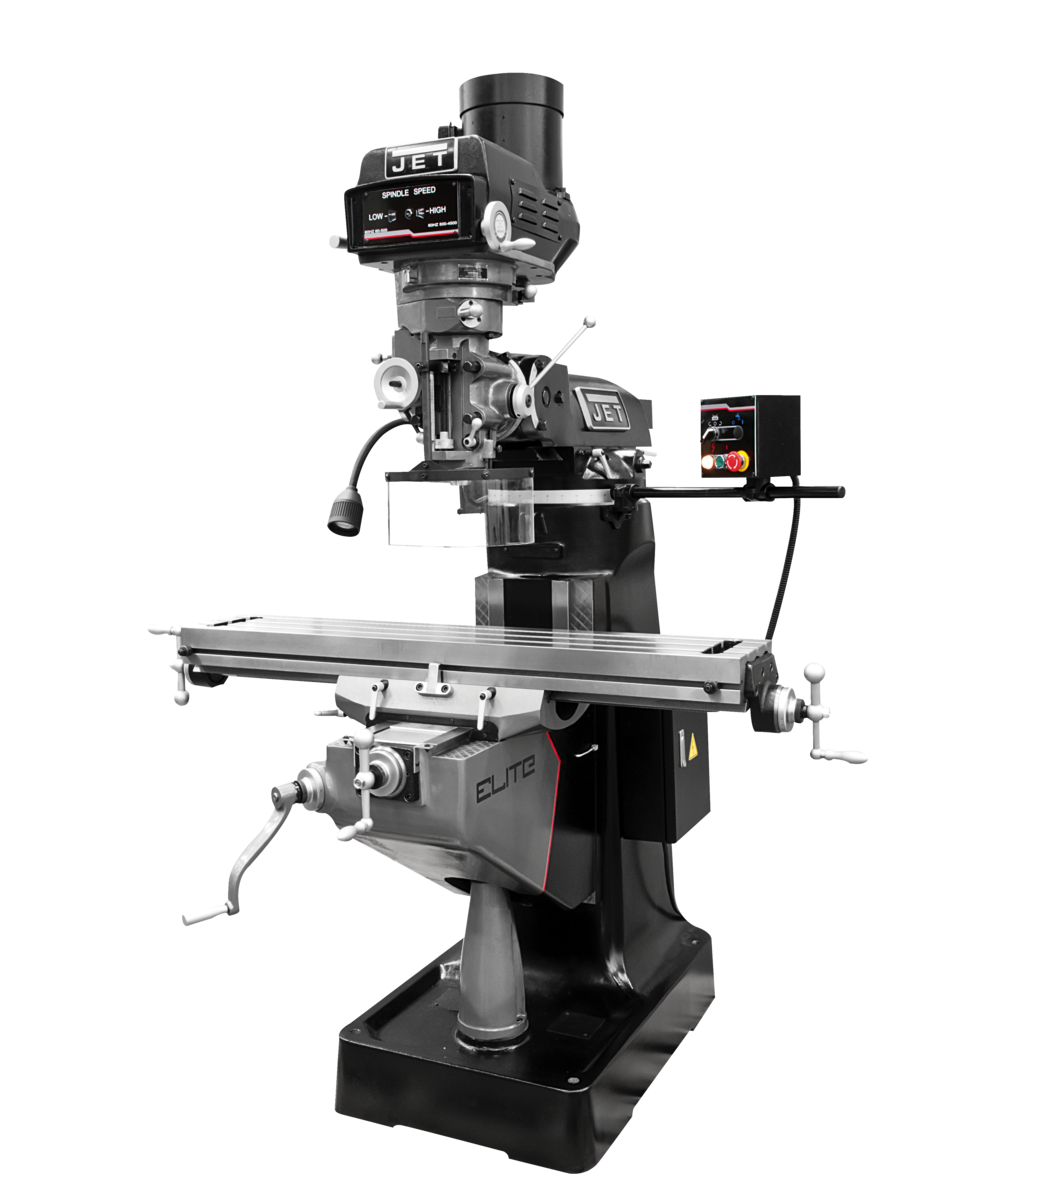 ETM-949 Mill with 3-Axis Newall DP700 (Quill) DRO and Servo X, Y, Z-Axis Powerfeeds